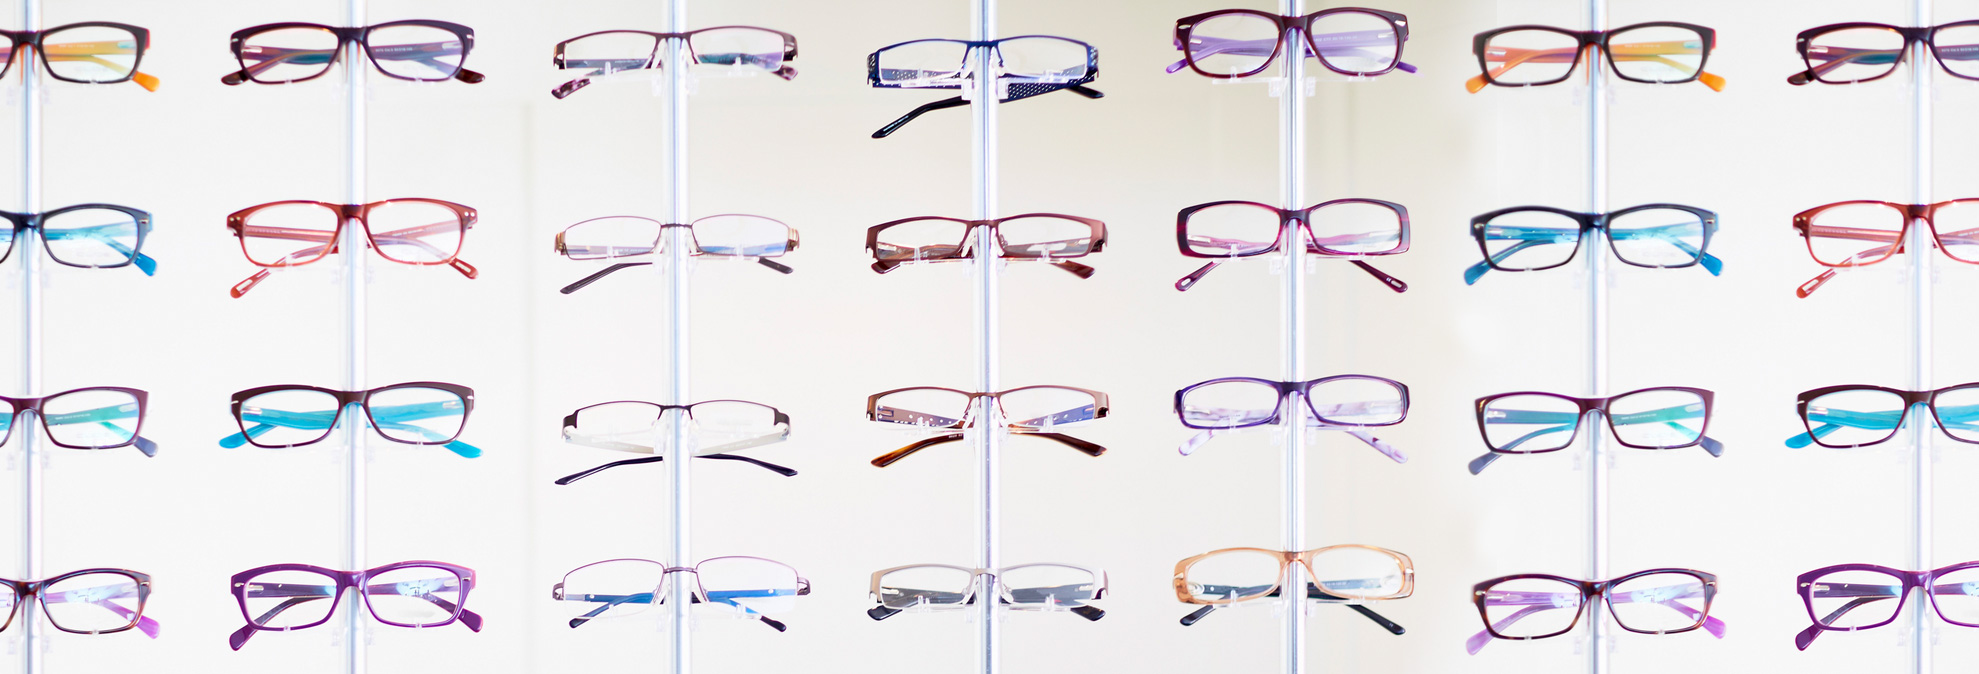 1c10f7a5f19 8 Great Ways to Save on the Cost of Eyeglasses - Consumer Reports